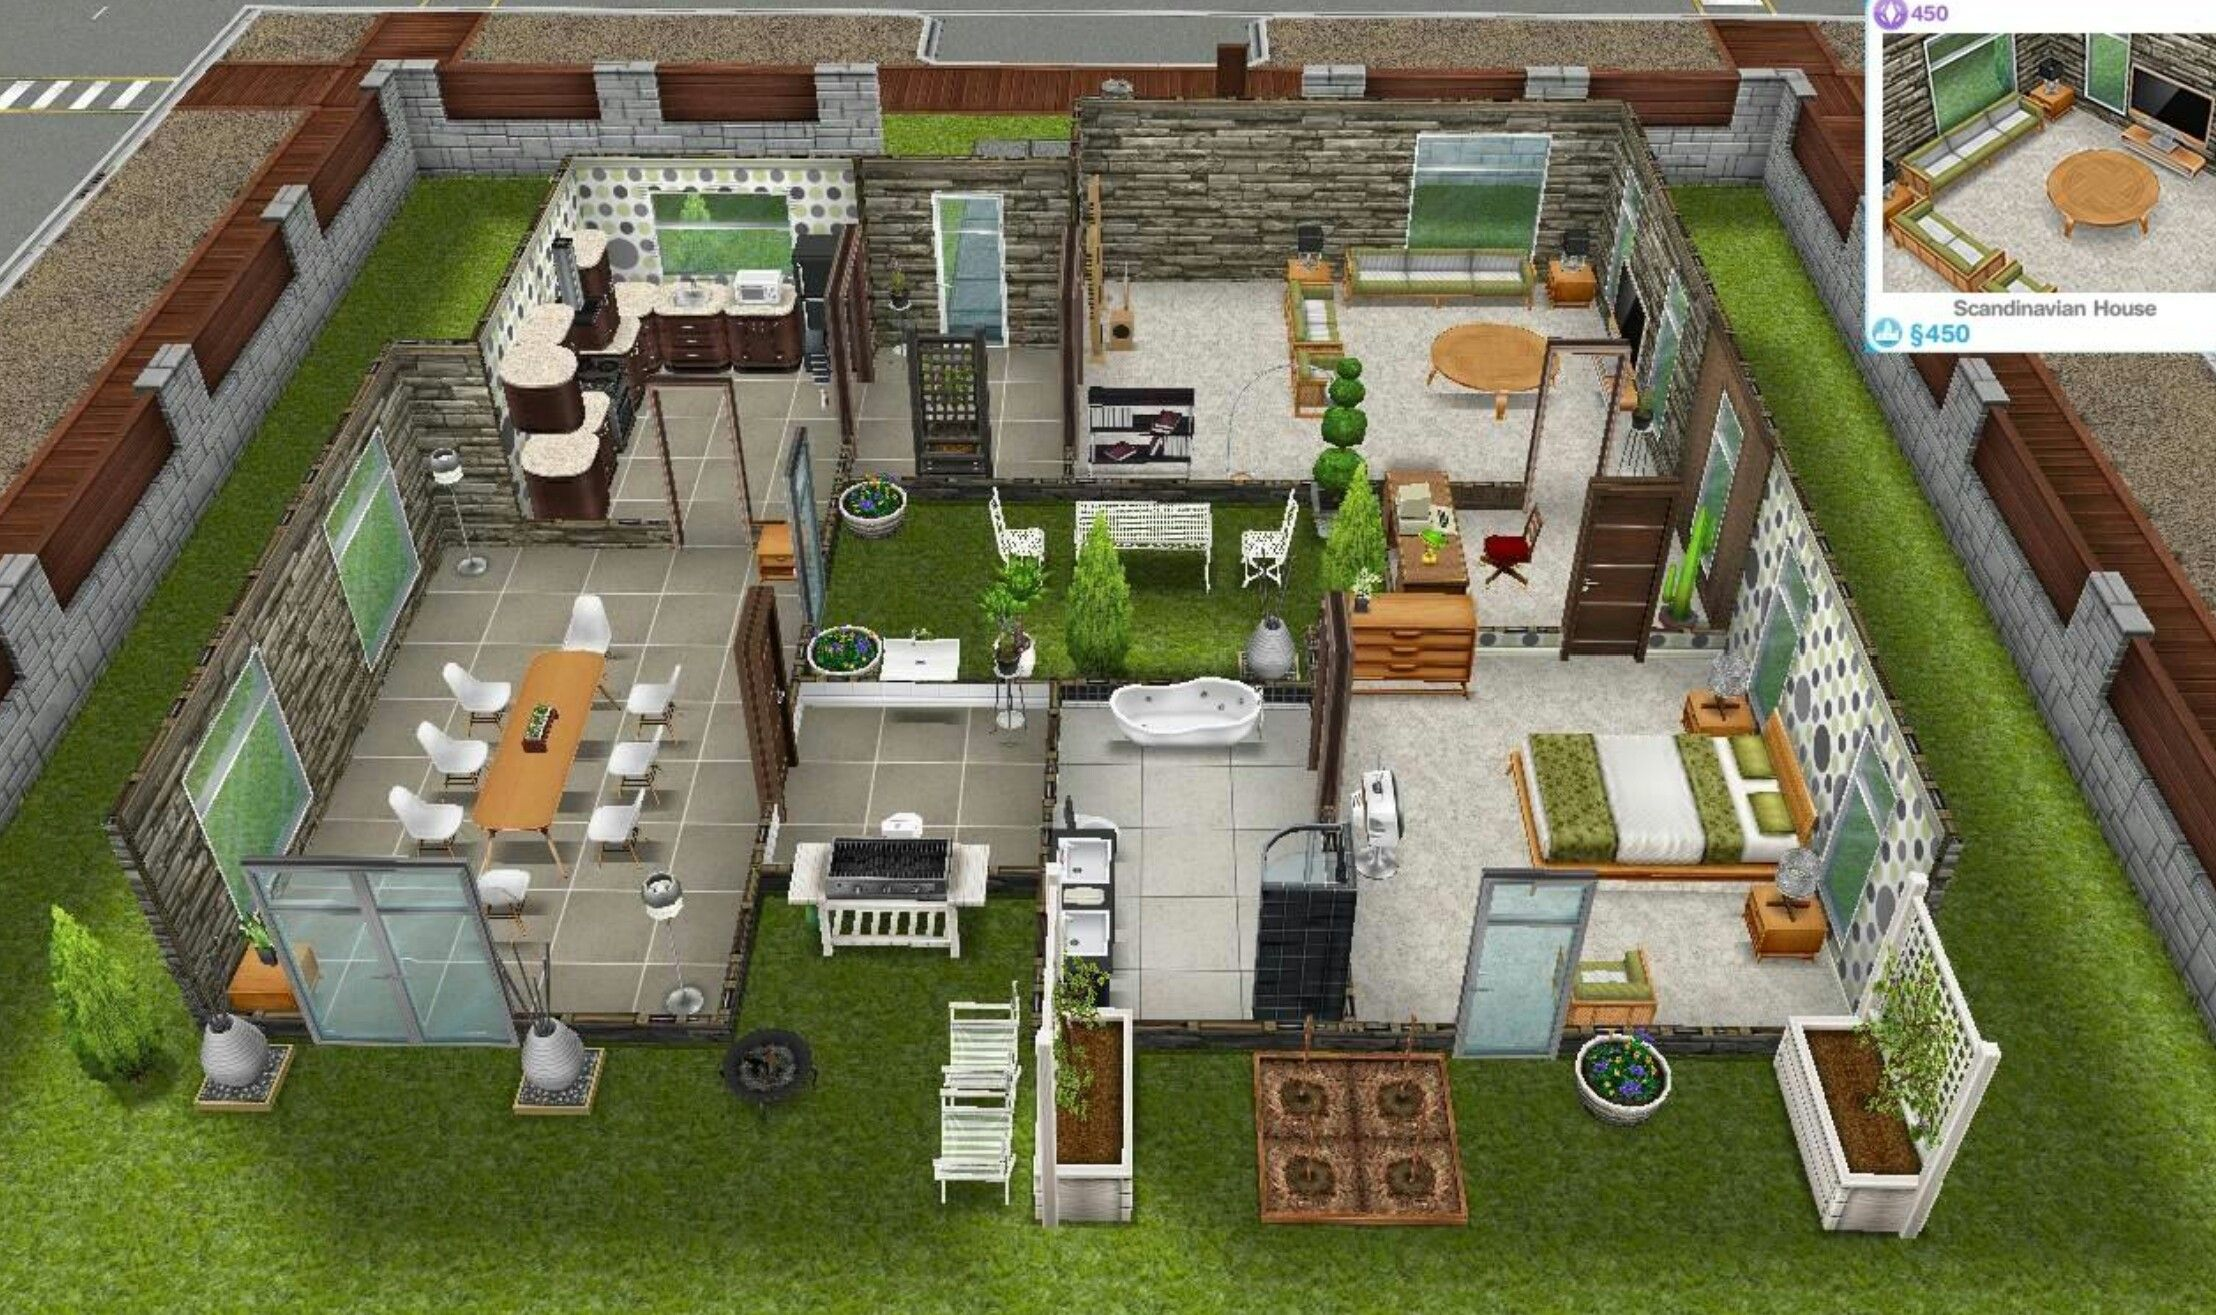 Pin by Anna Harder on Homes   Sims house, Sims freeplay houses ...